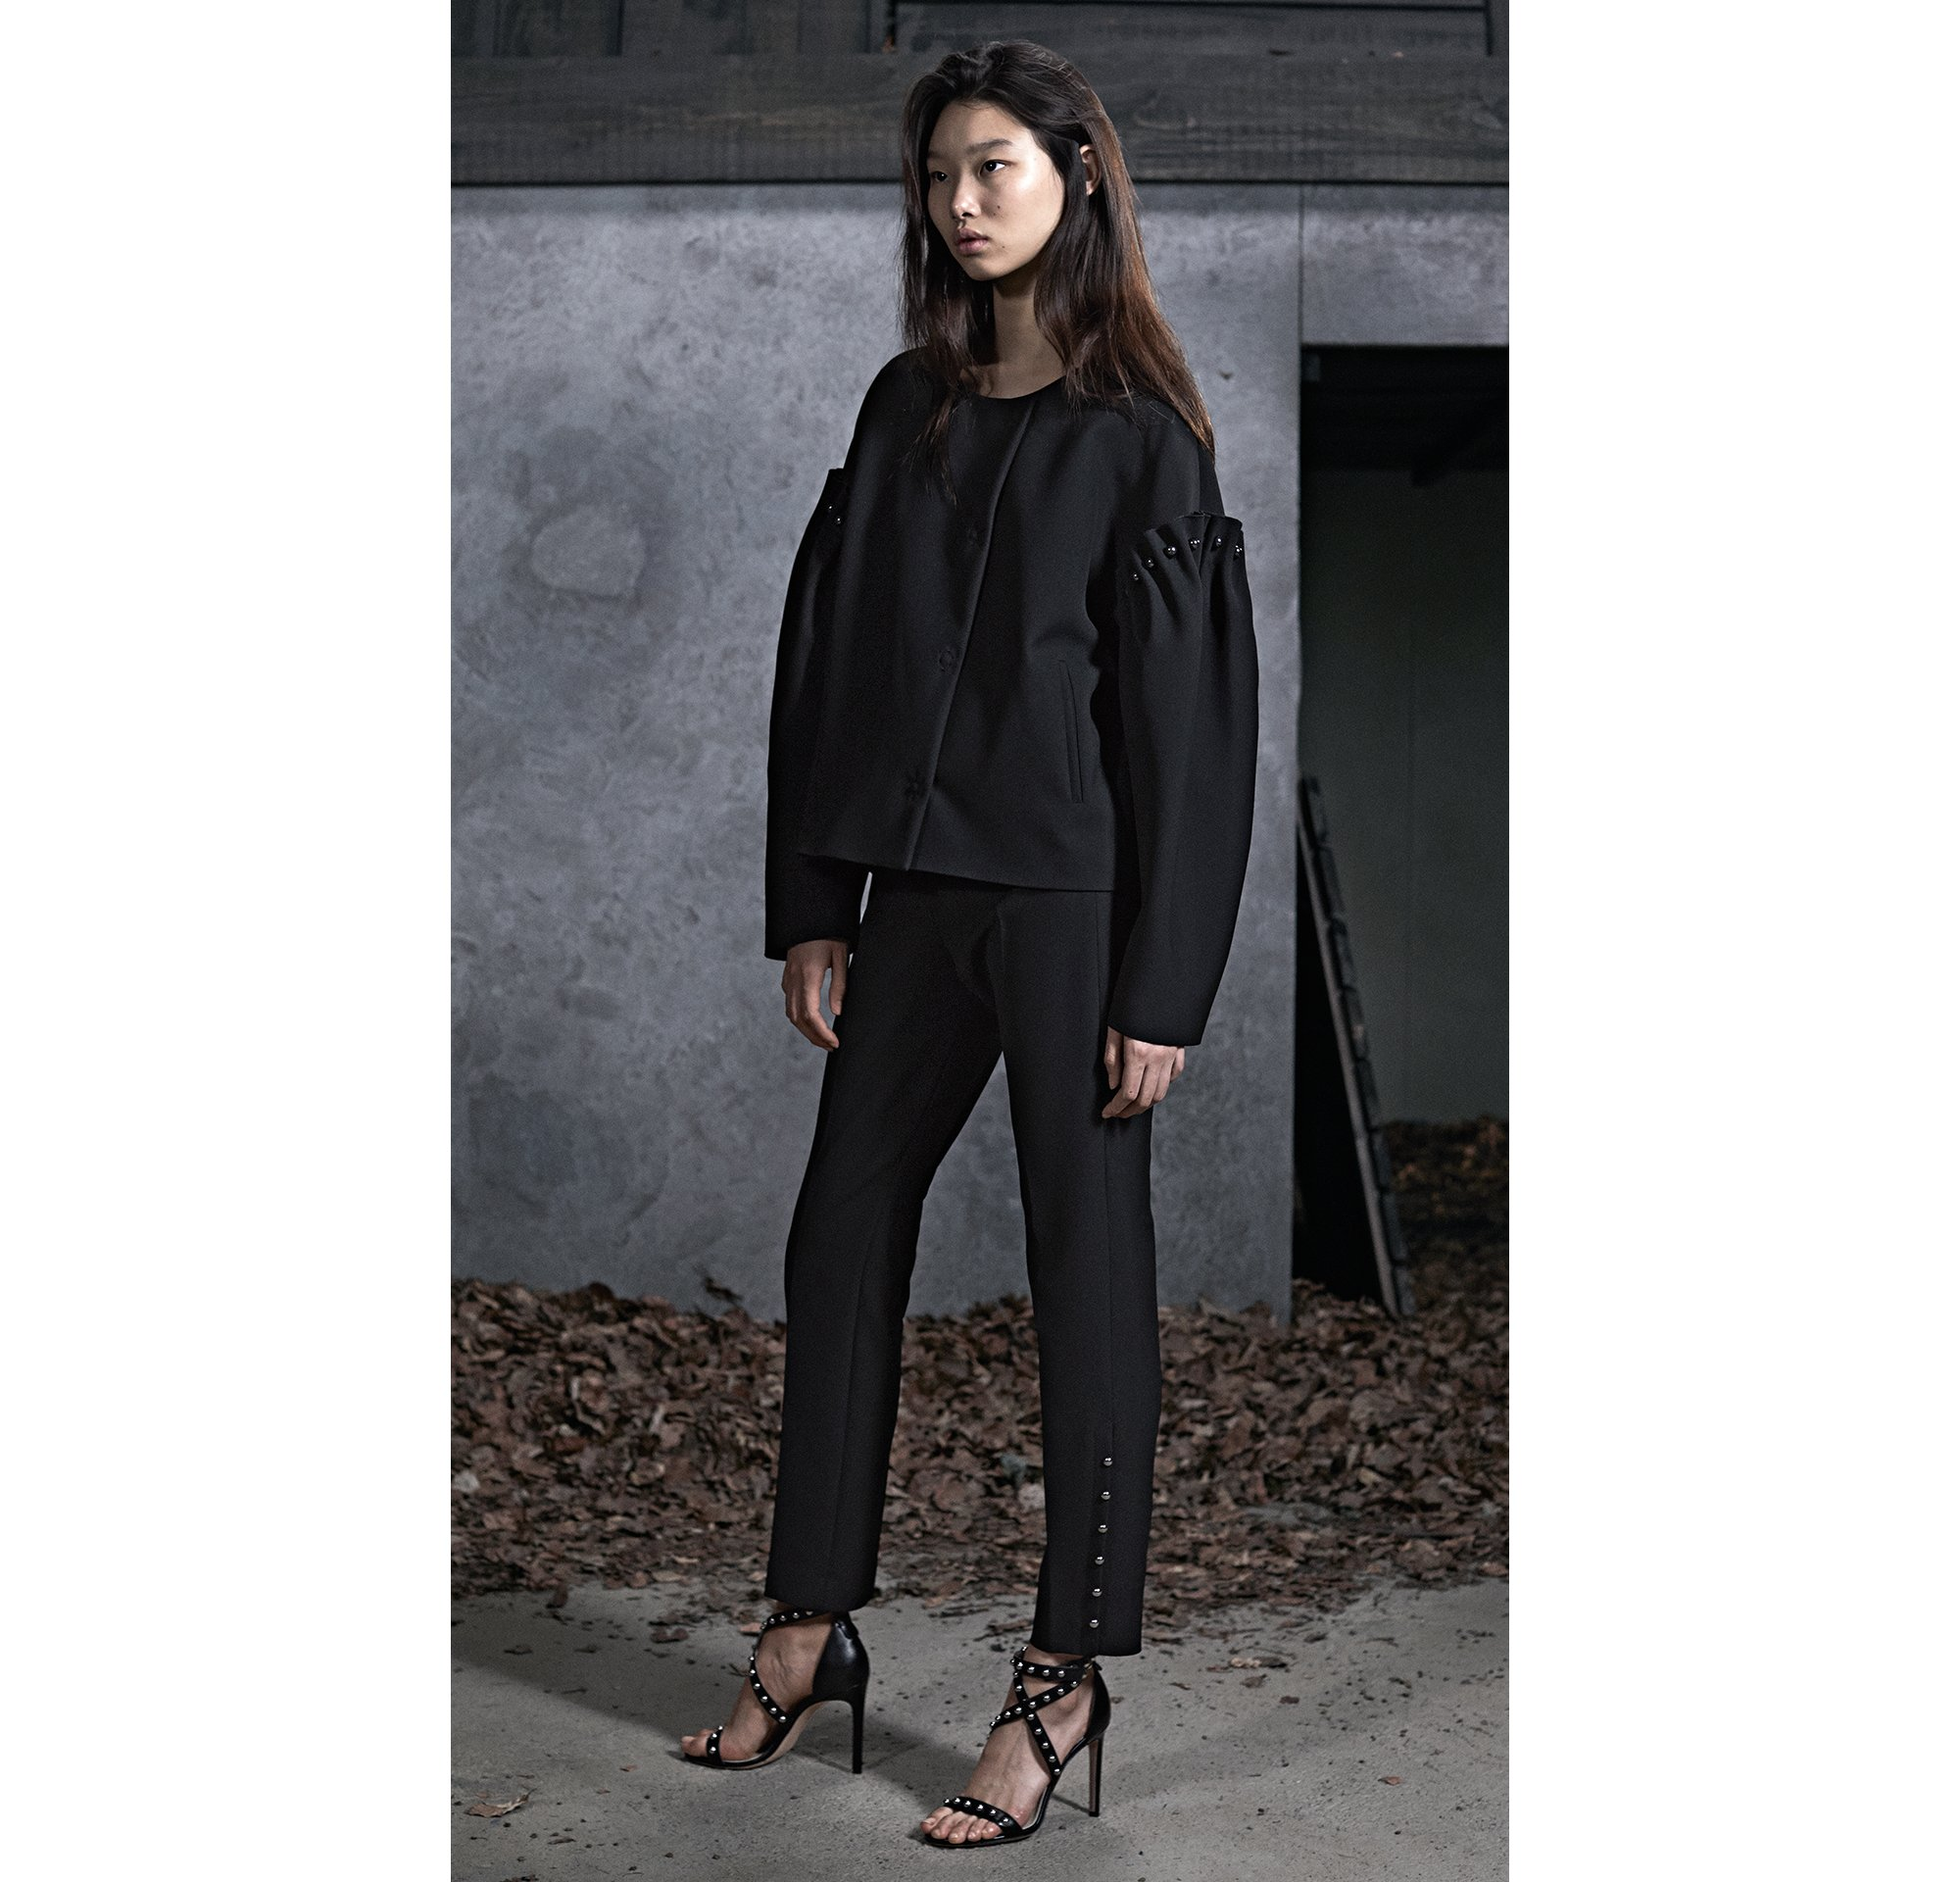 HUGO_Women_PS18_Look_1,